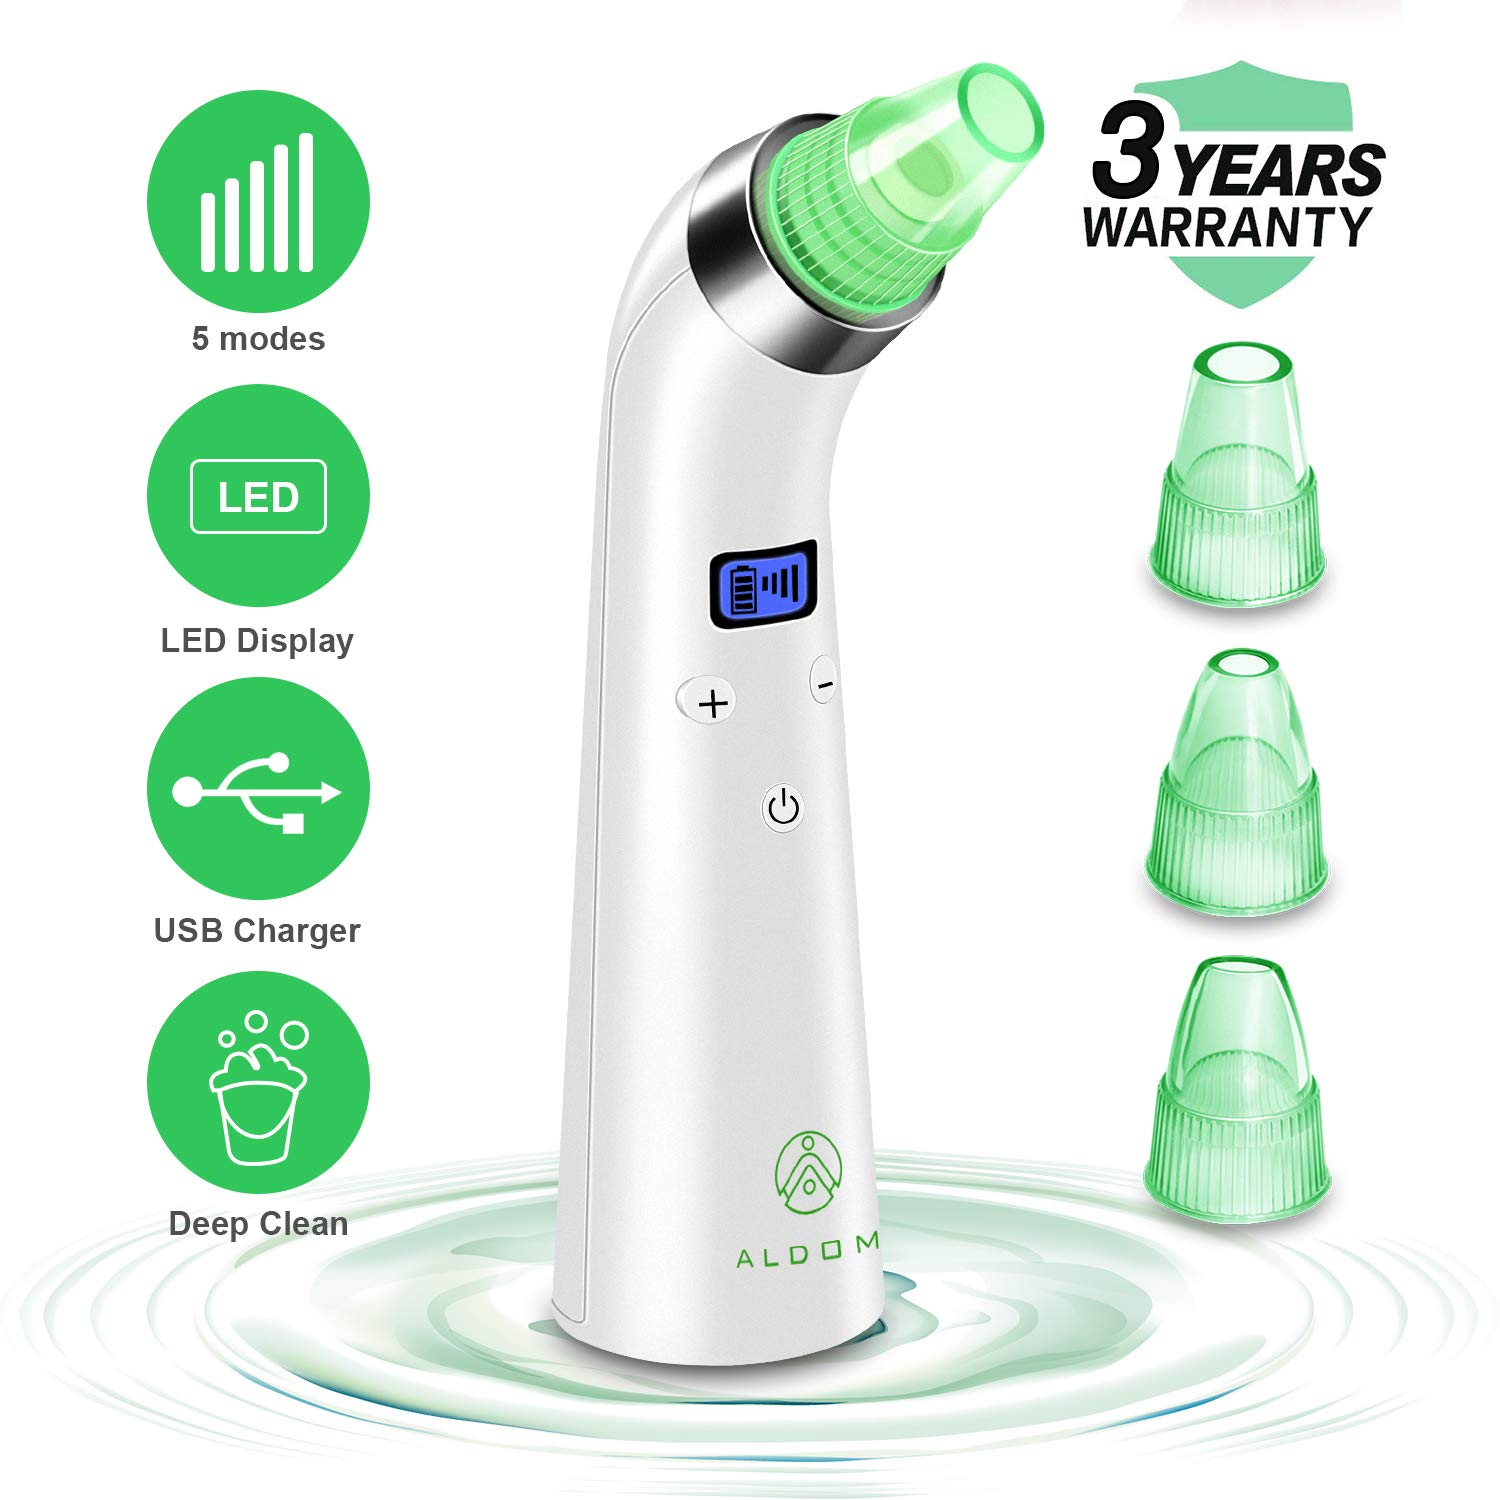 Blackhead Remover Pore Vacuum - Electric Blackhead Vacuum Cleaner Extractor Tool Device Comedo Removal Suction Machine Beauty Device with LED Display for Facial Skin Treatment By ALDOM Aldom Inc BR-AL-00001